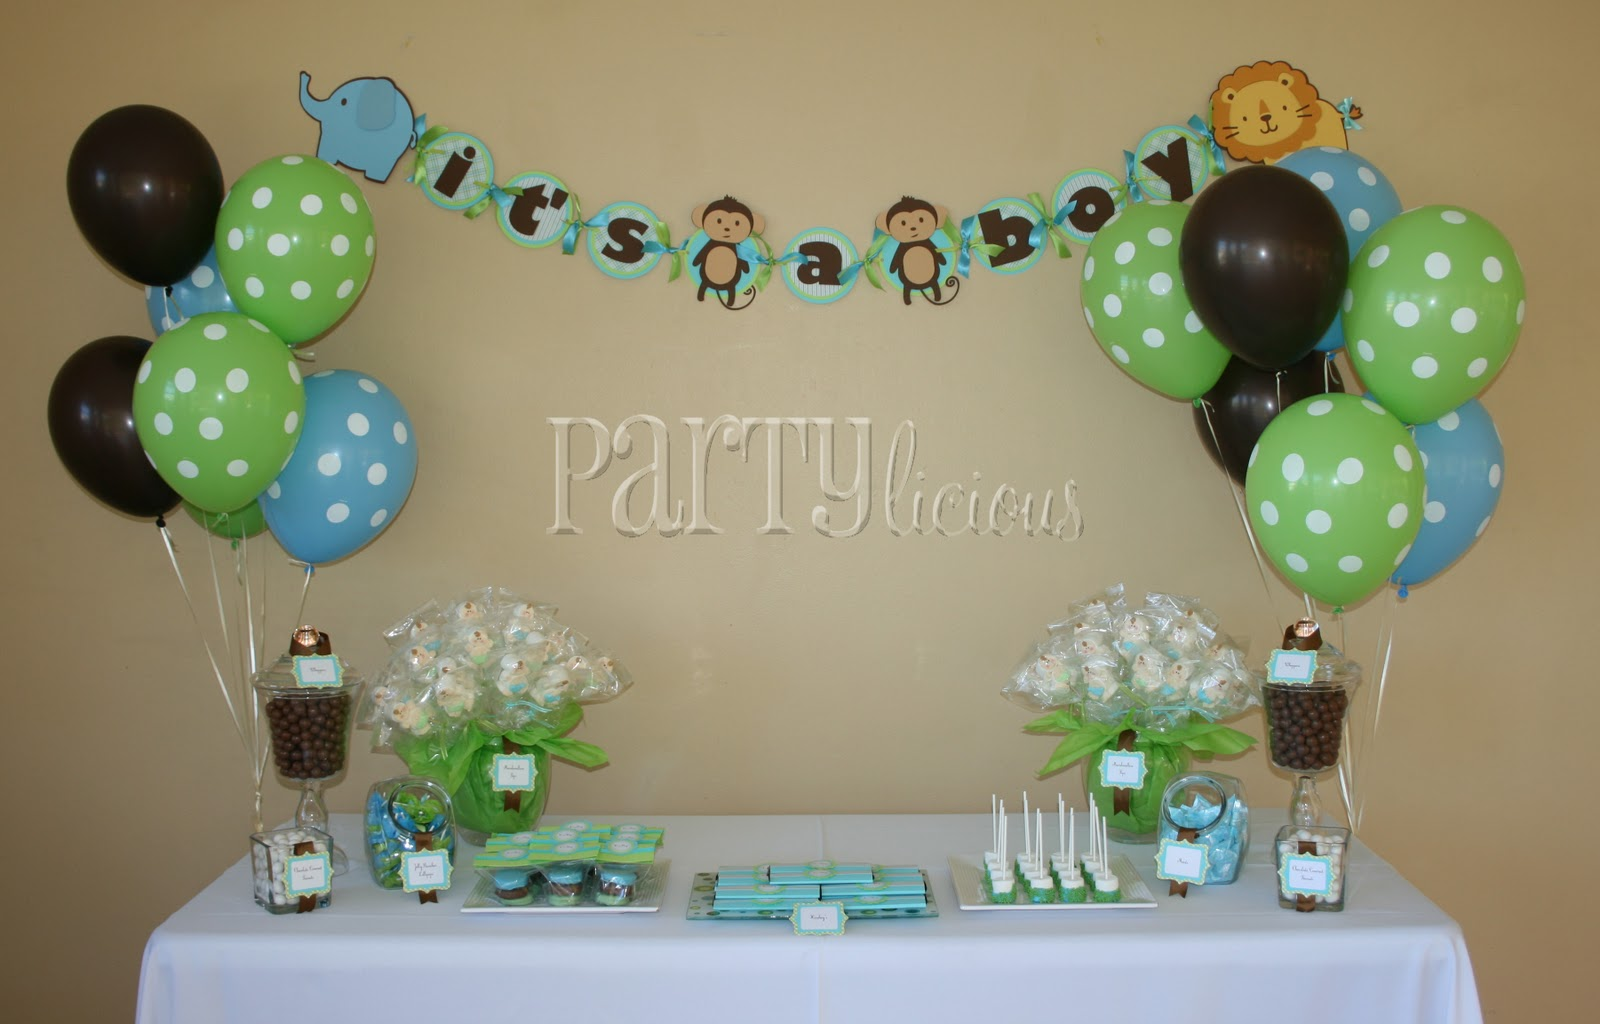 Partylicious events pr december 2010 for Baby shower decoration ideas boy